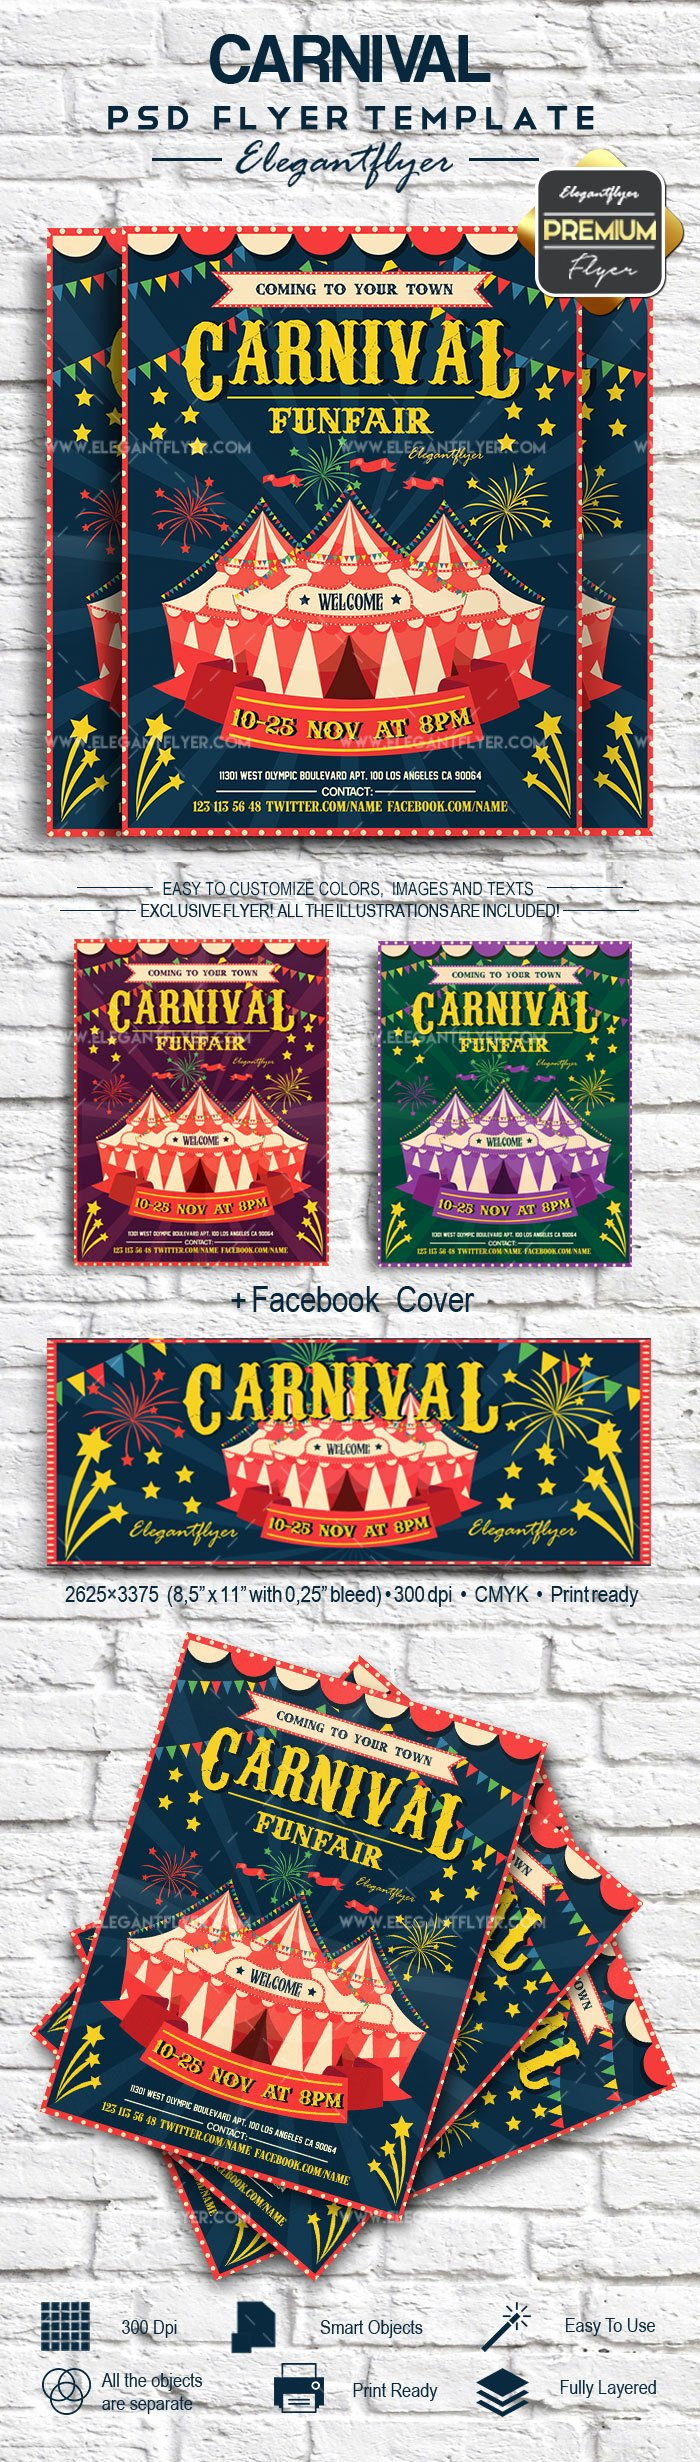 Carnival Flyer Template Free Lovely Carnival – Flyer Psd Template – by Elegantflyer